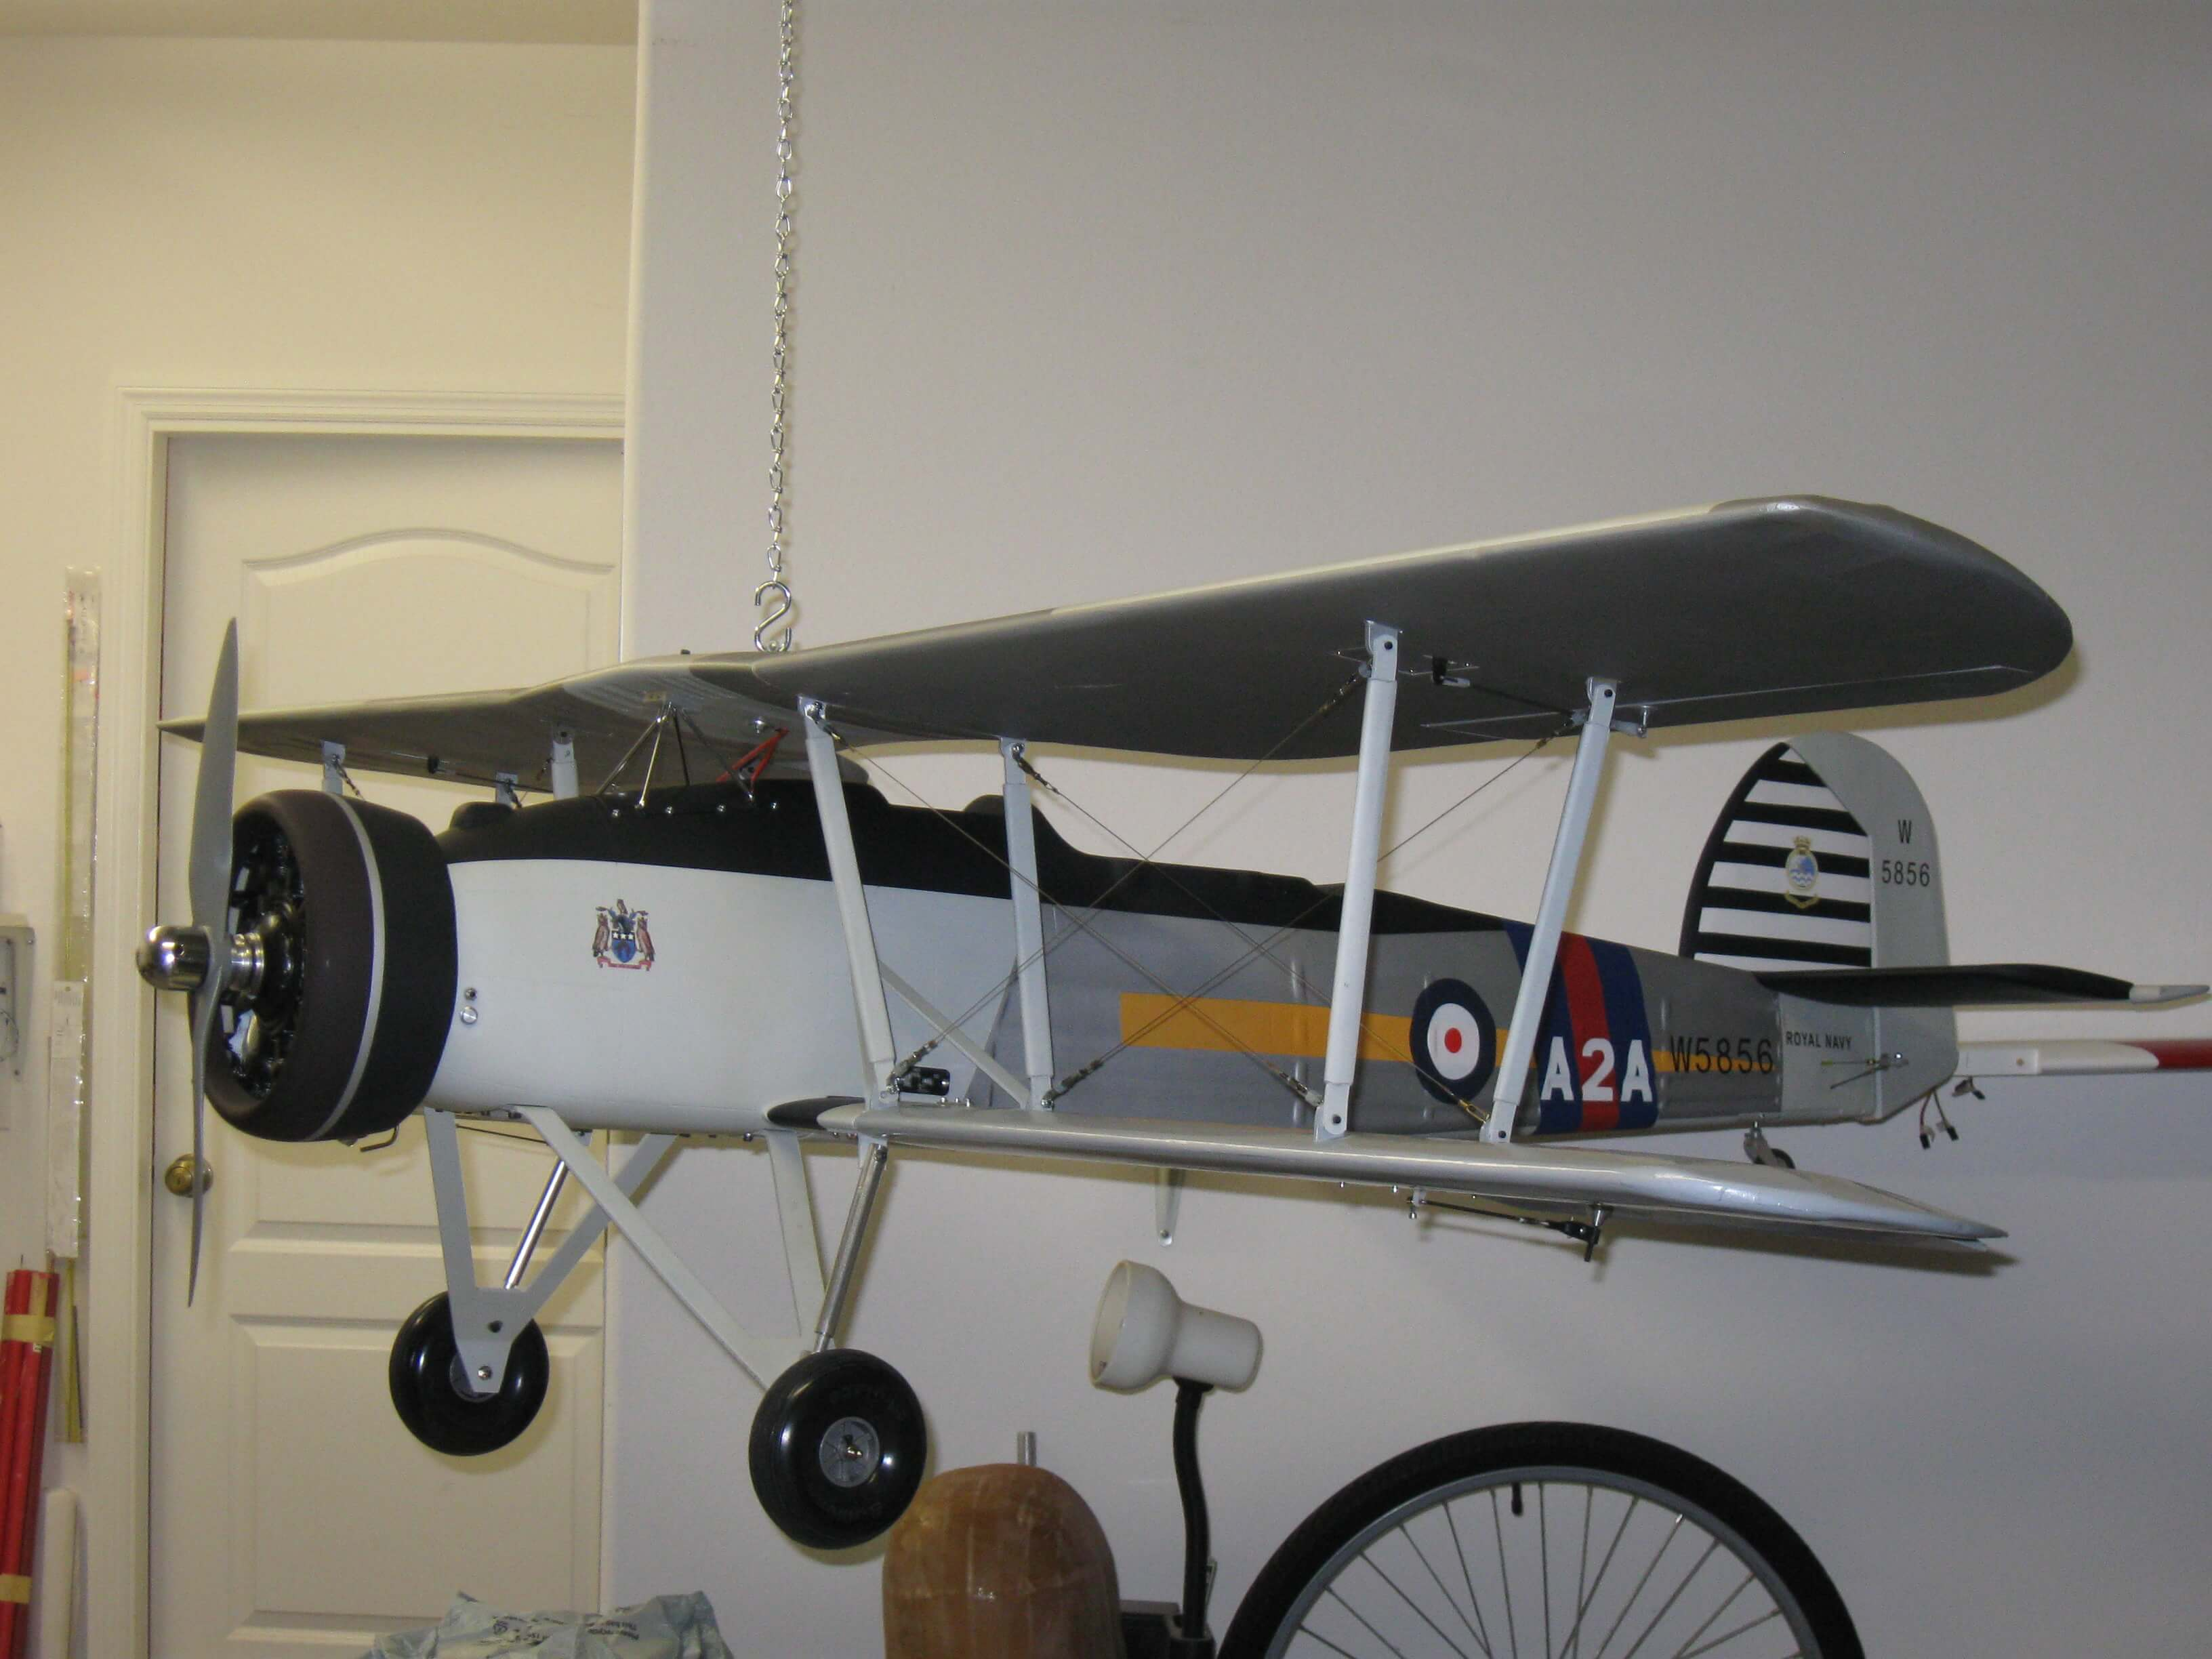 The Arrow Shows Chain Hanging From Ceiling Fuselage Looks Almost Level Maybe A Touch Nose Up I Used Small Along Center